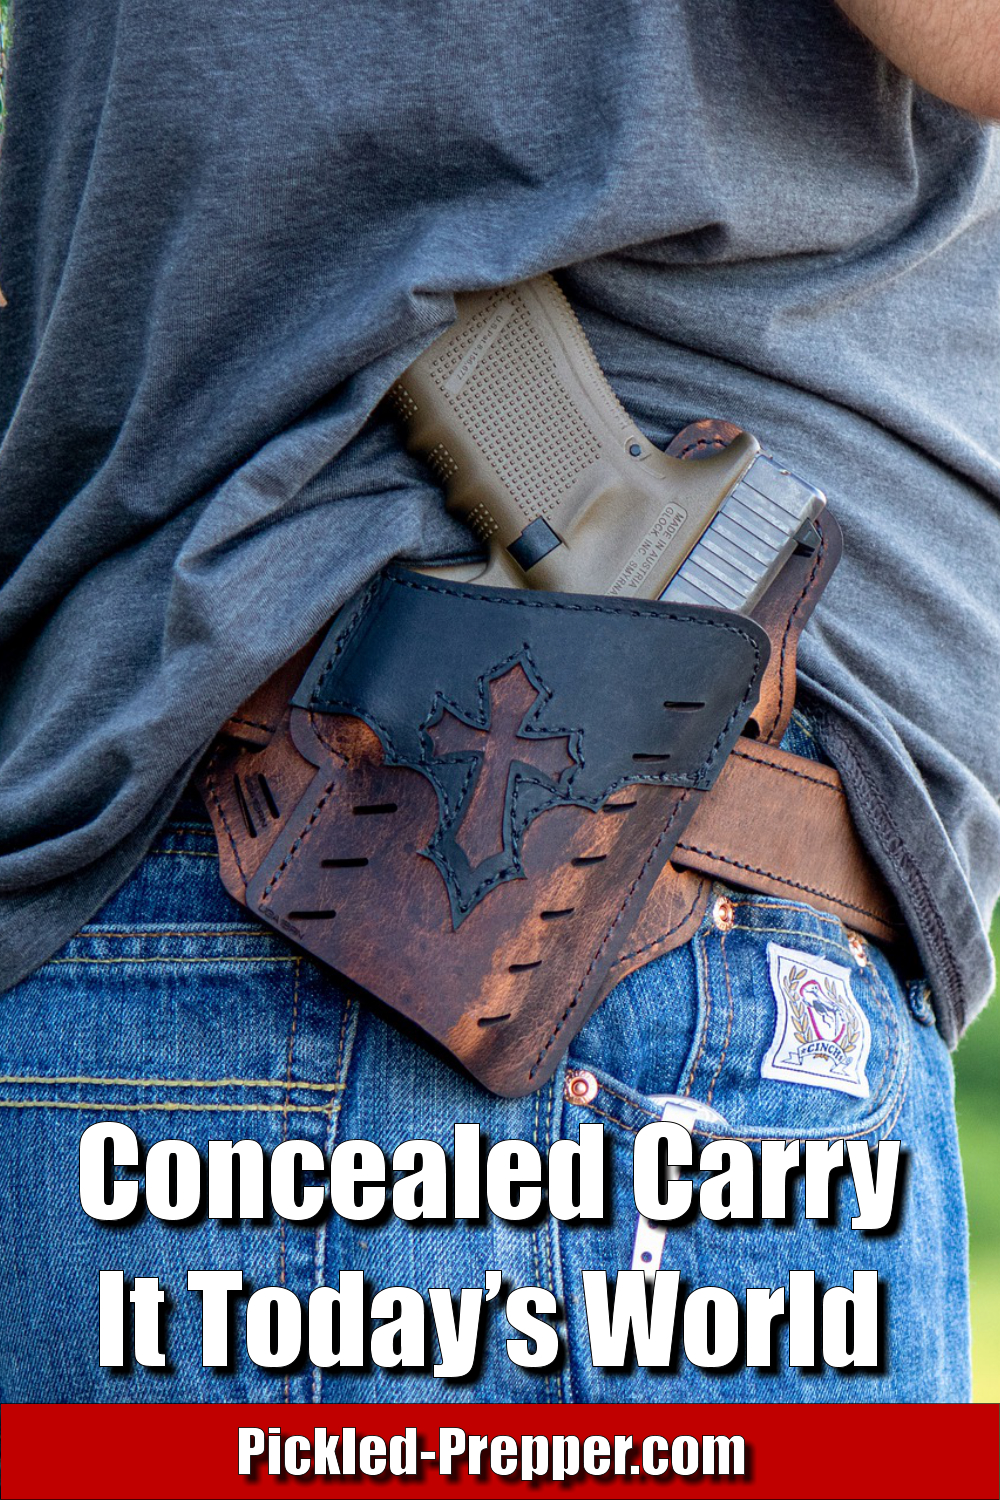 Concealed Carry Challenges in an Era of Protests